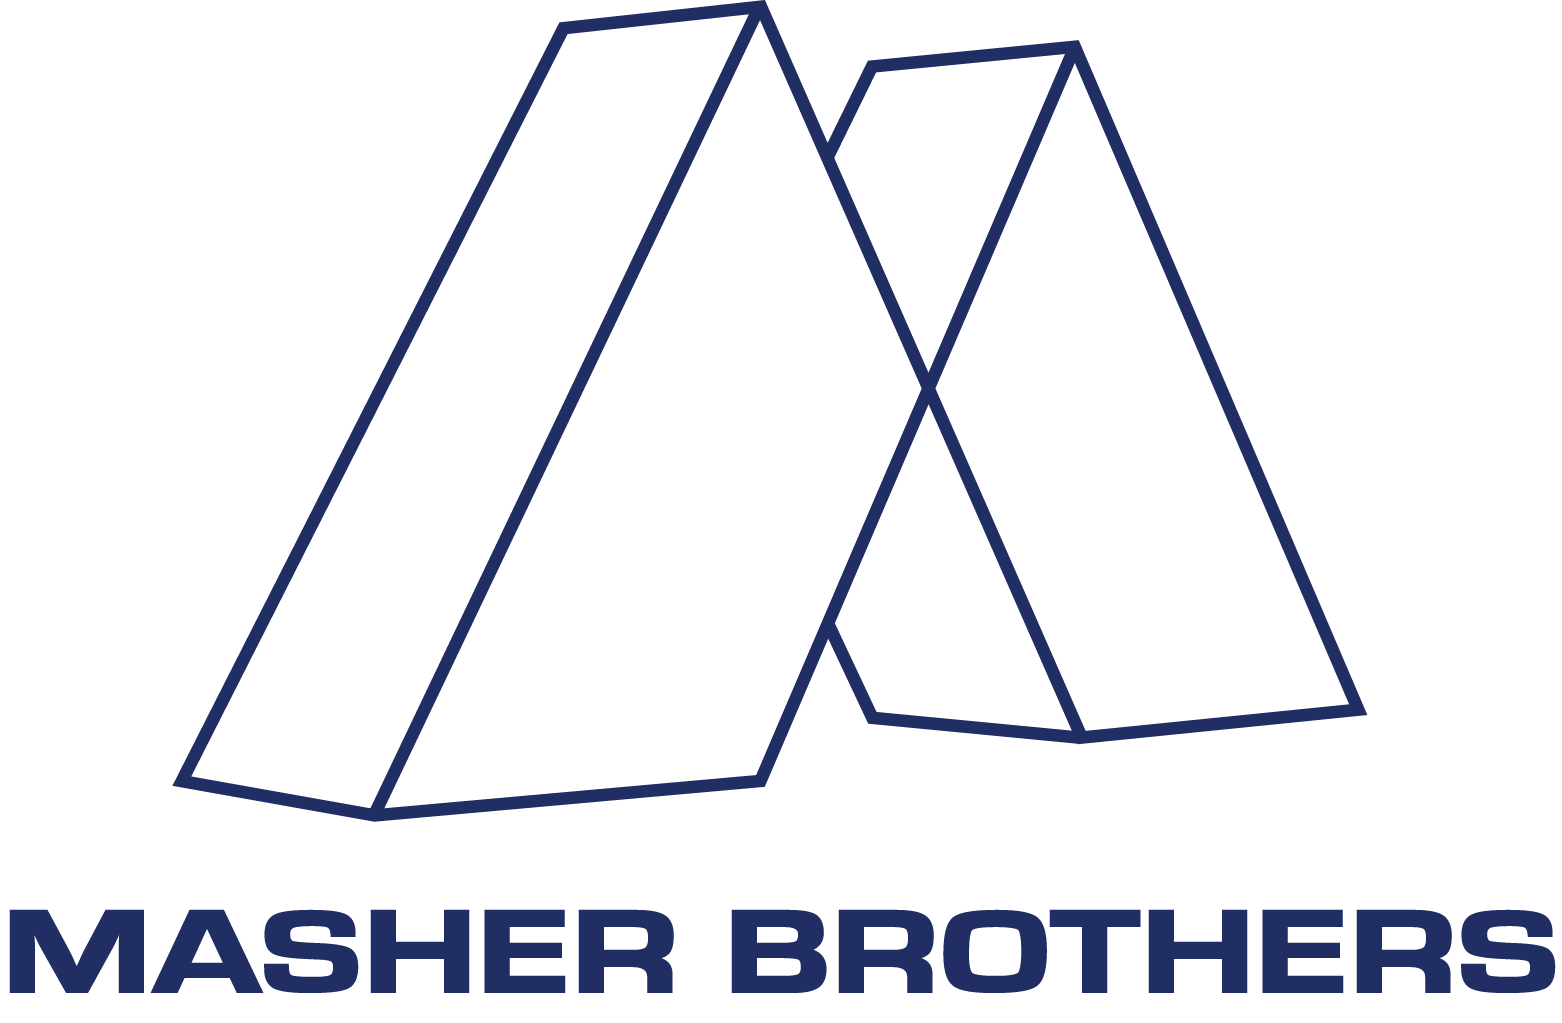 Masher Brothers